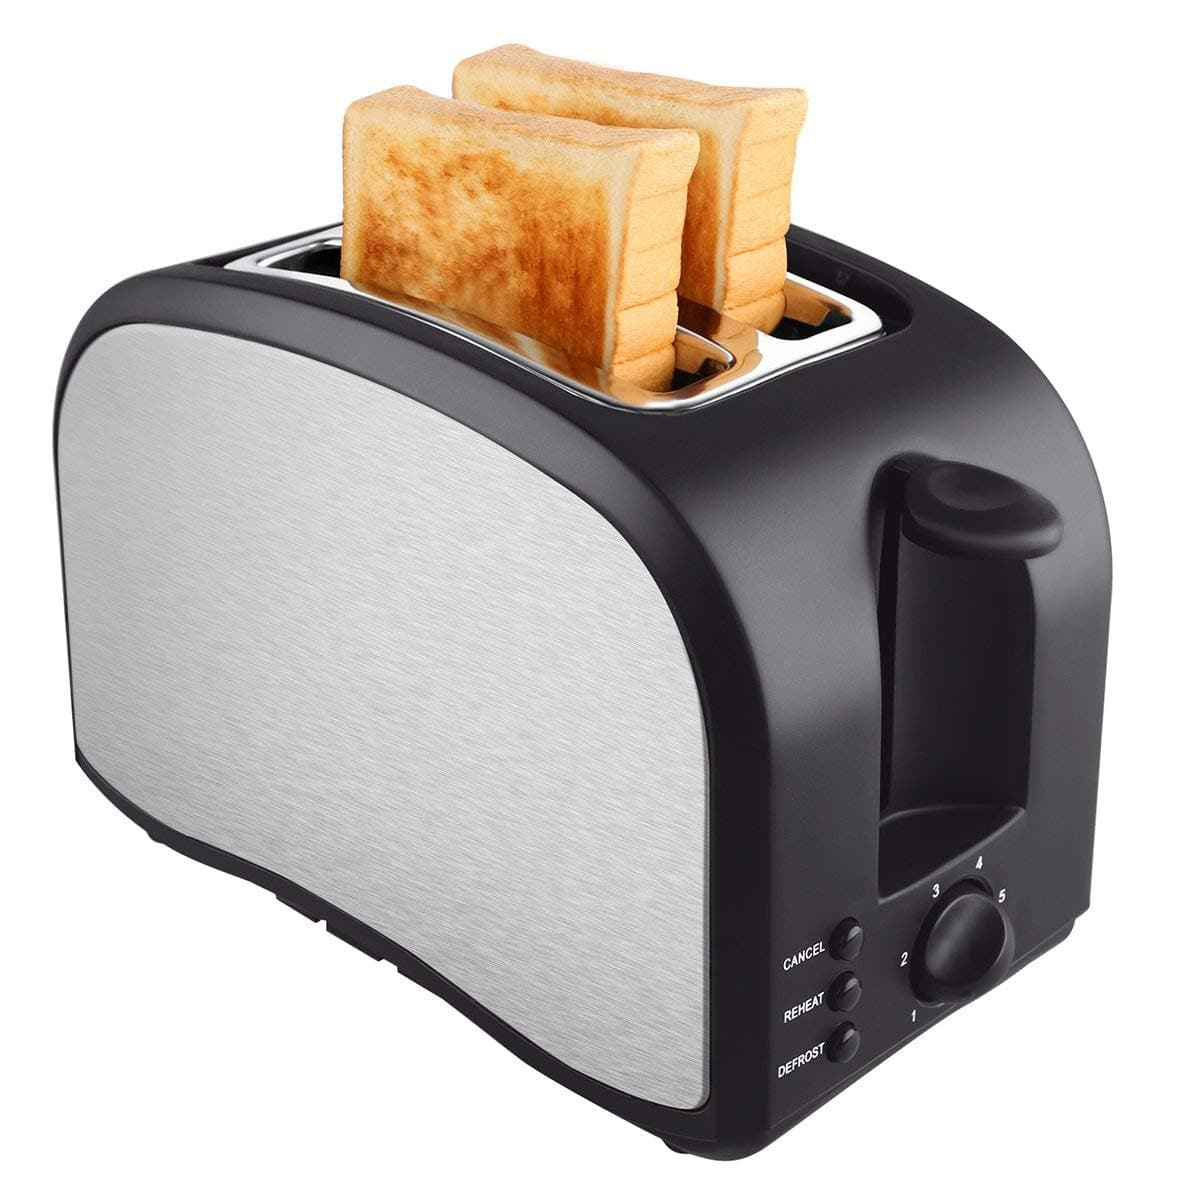 TOBOX Extra-Wide 2 Slice Toaster on sale for $14.00 (50% off) @ Amazon